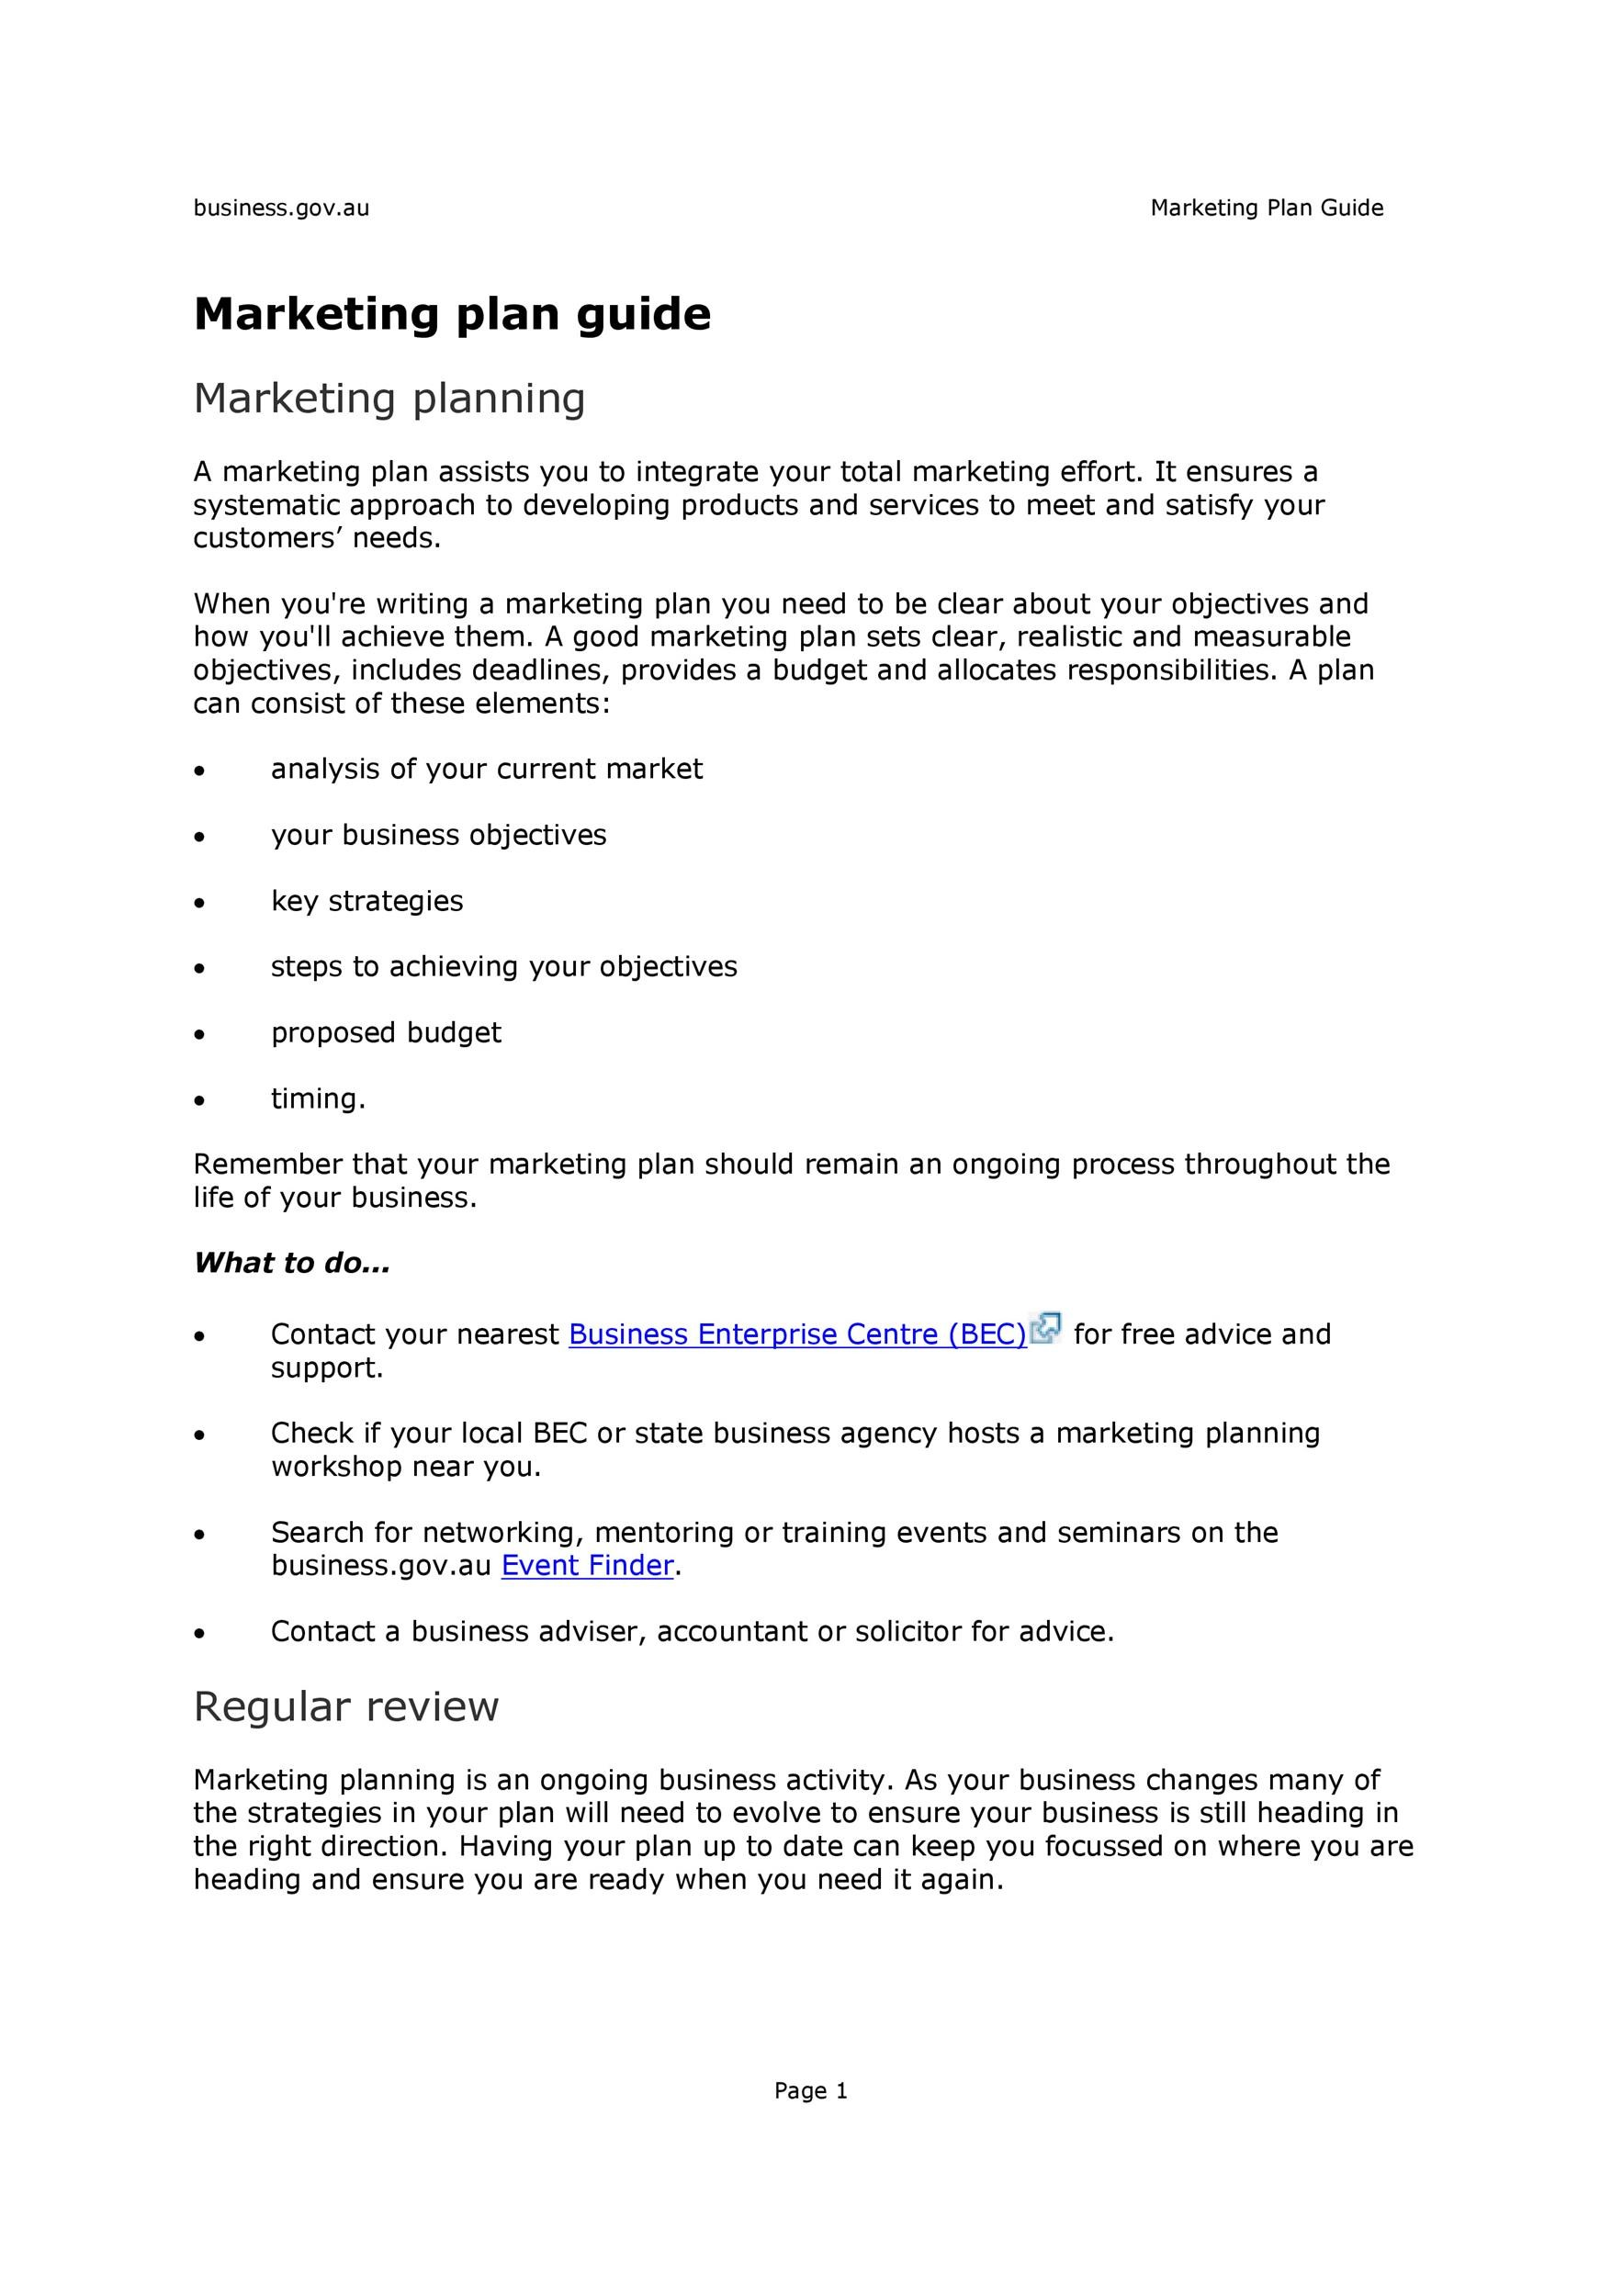 30 Professional Marketing Plan Templates - Template Lab